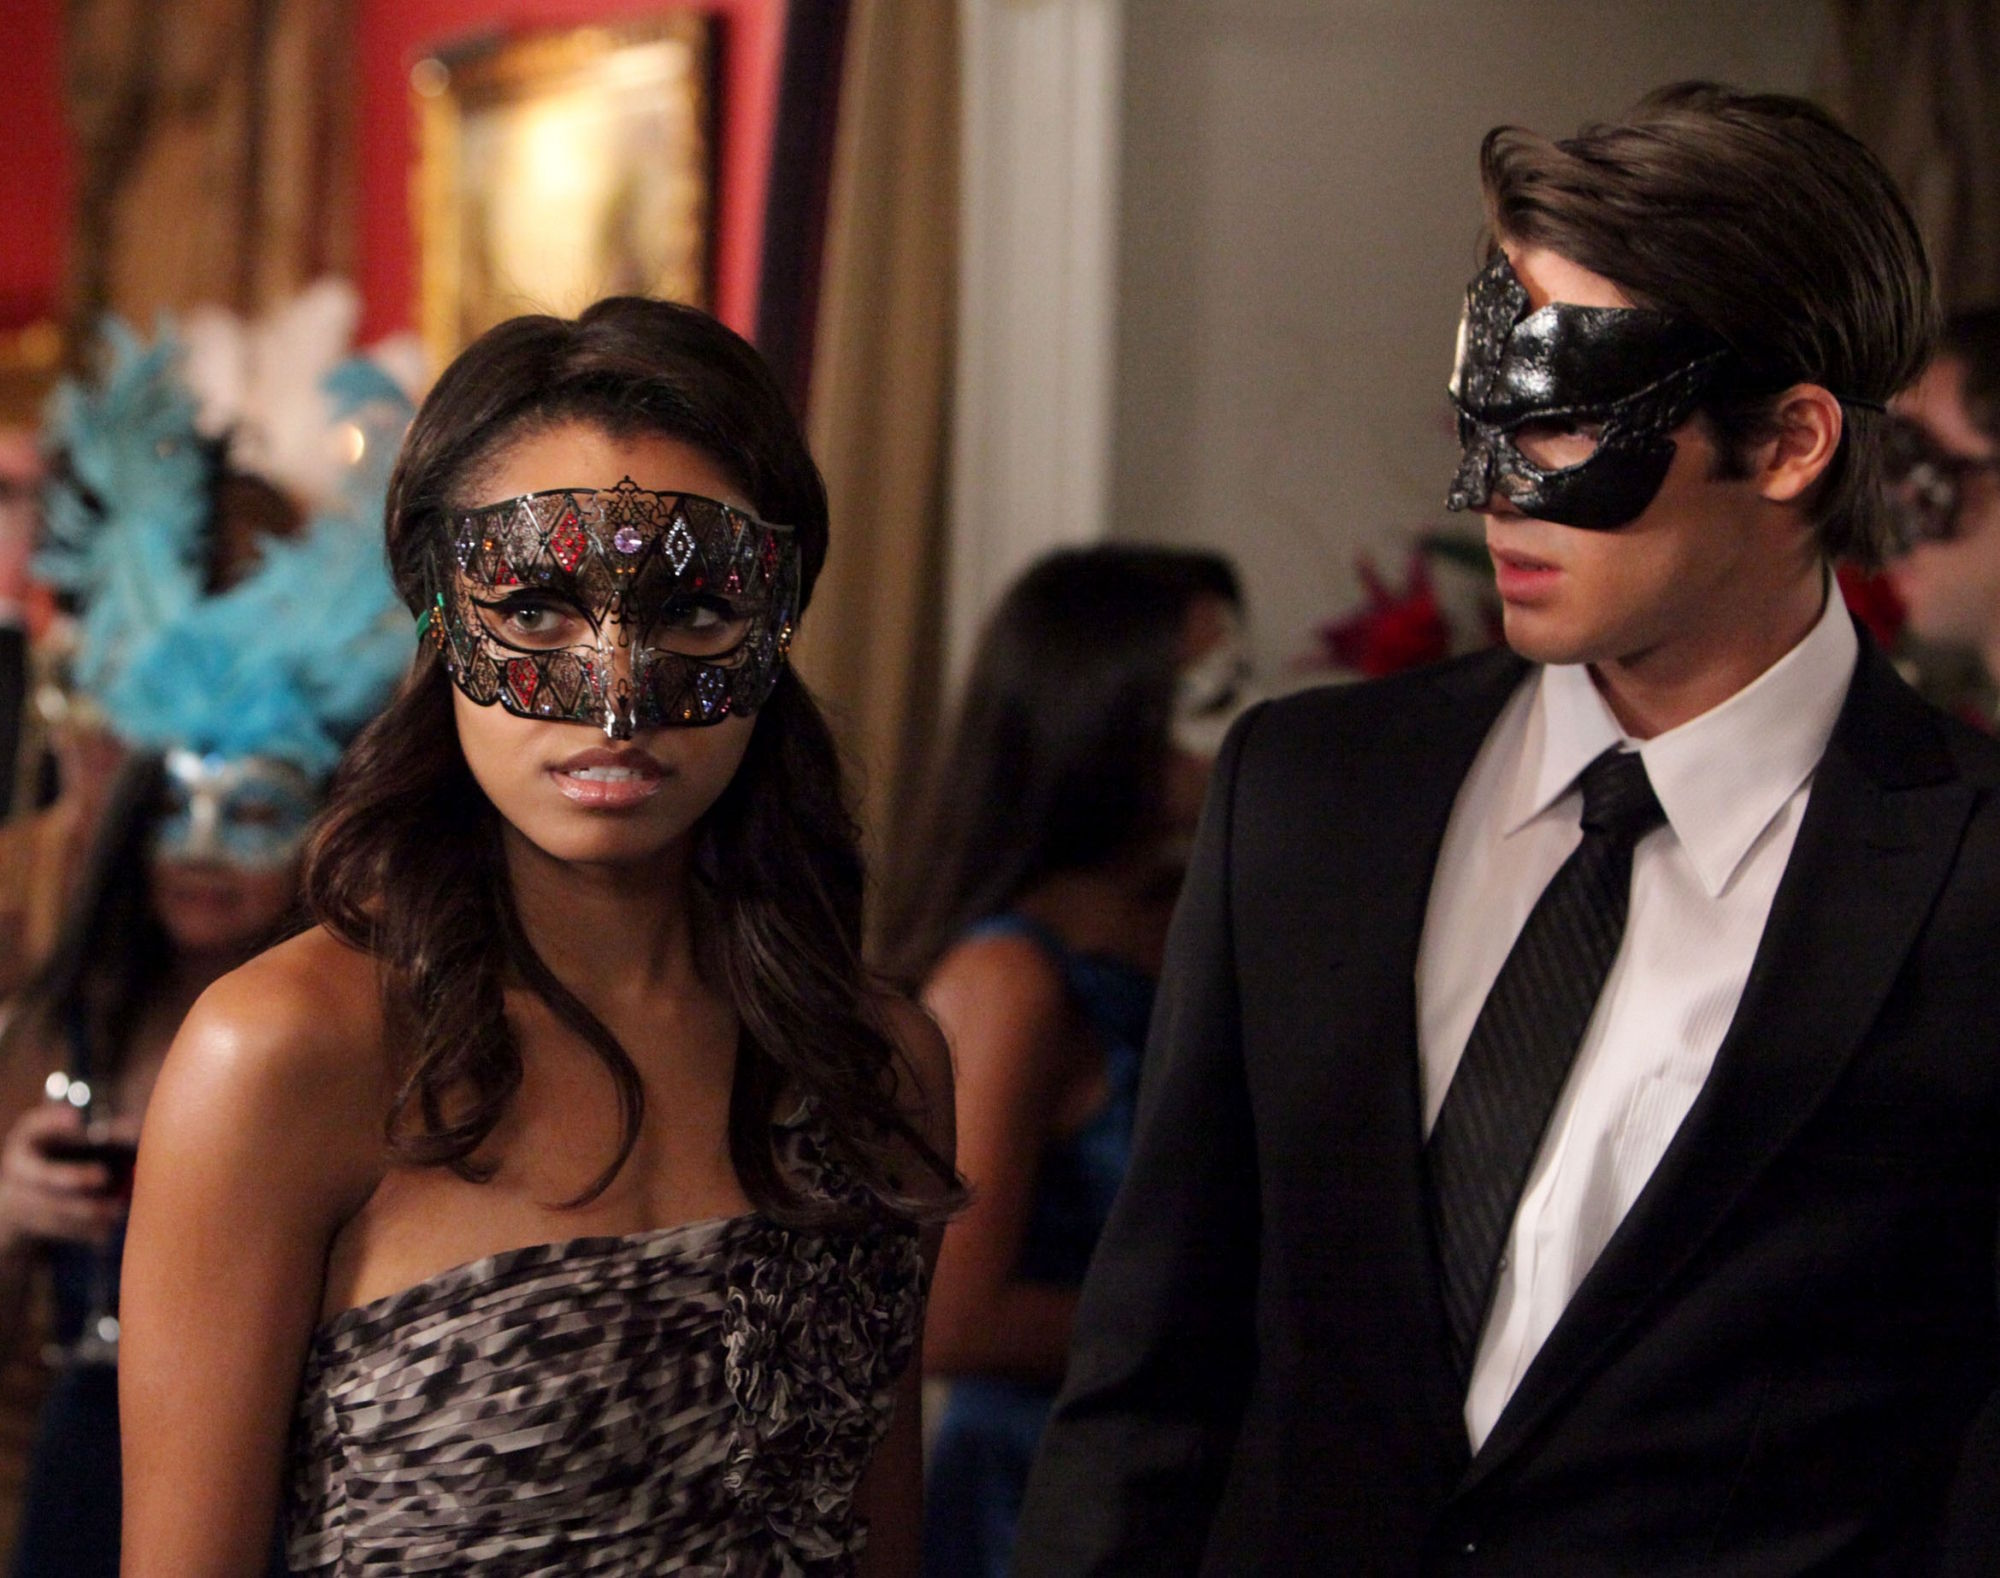 http://images4.fanpop.com/image/photos/16200000/2-07-Masquerade-the-vampire-diaries-16220747-2000-1578.jpg